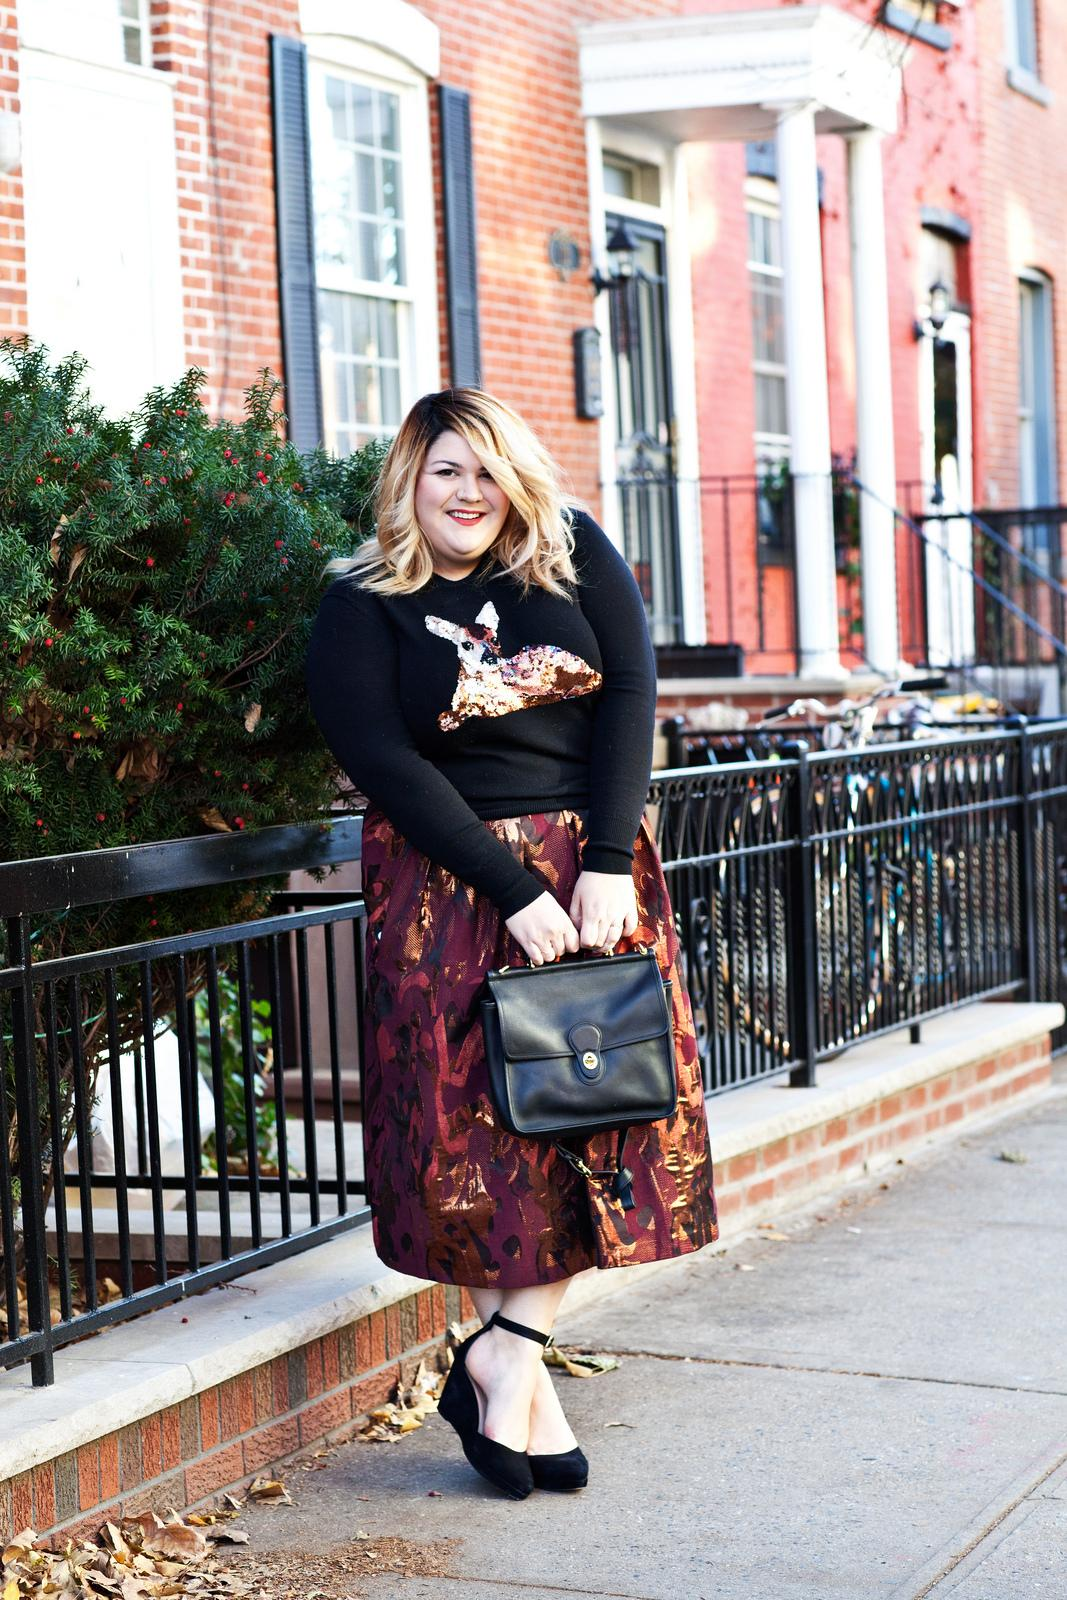 The 10 plus-size street style stars you really should be following: http://t.co/c02zZfKjEM CC @nicolettemason http://t.co/3EKj7KQucU